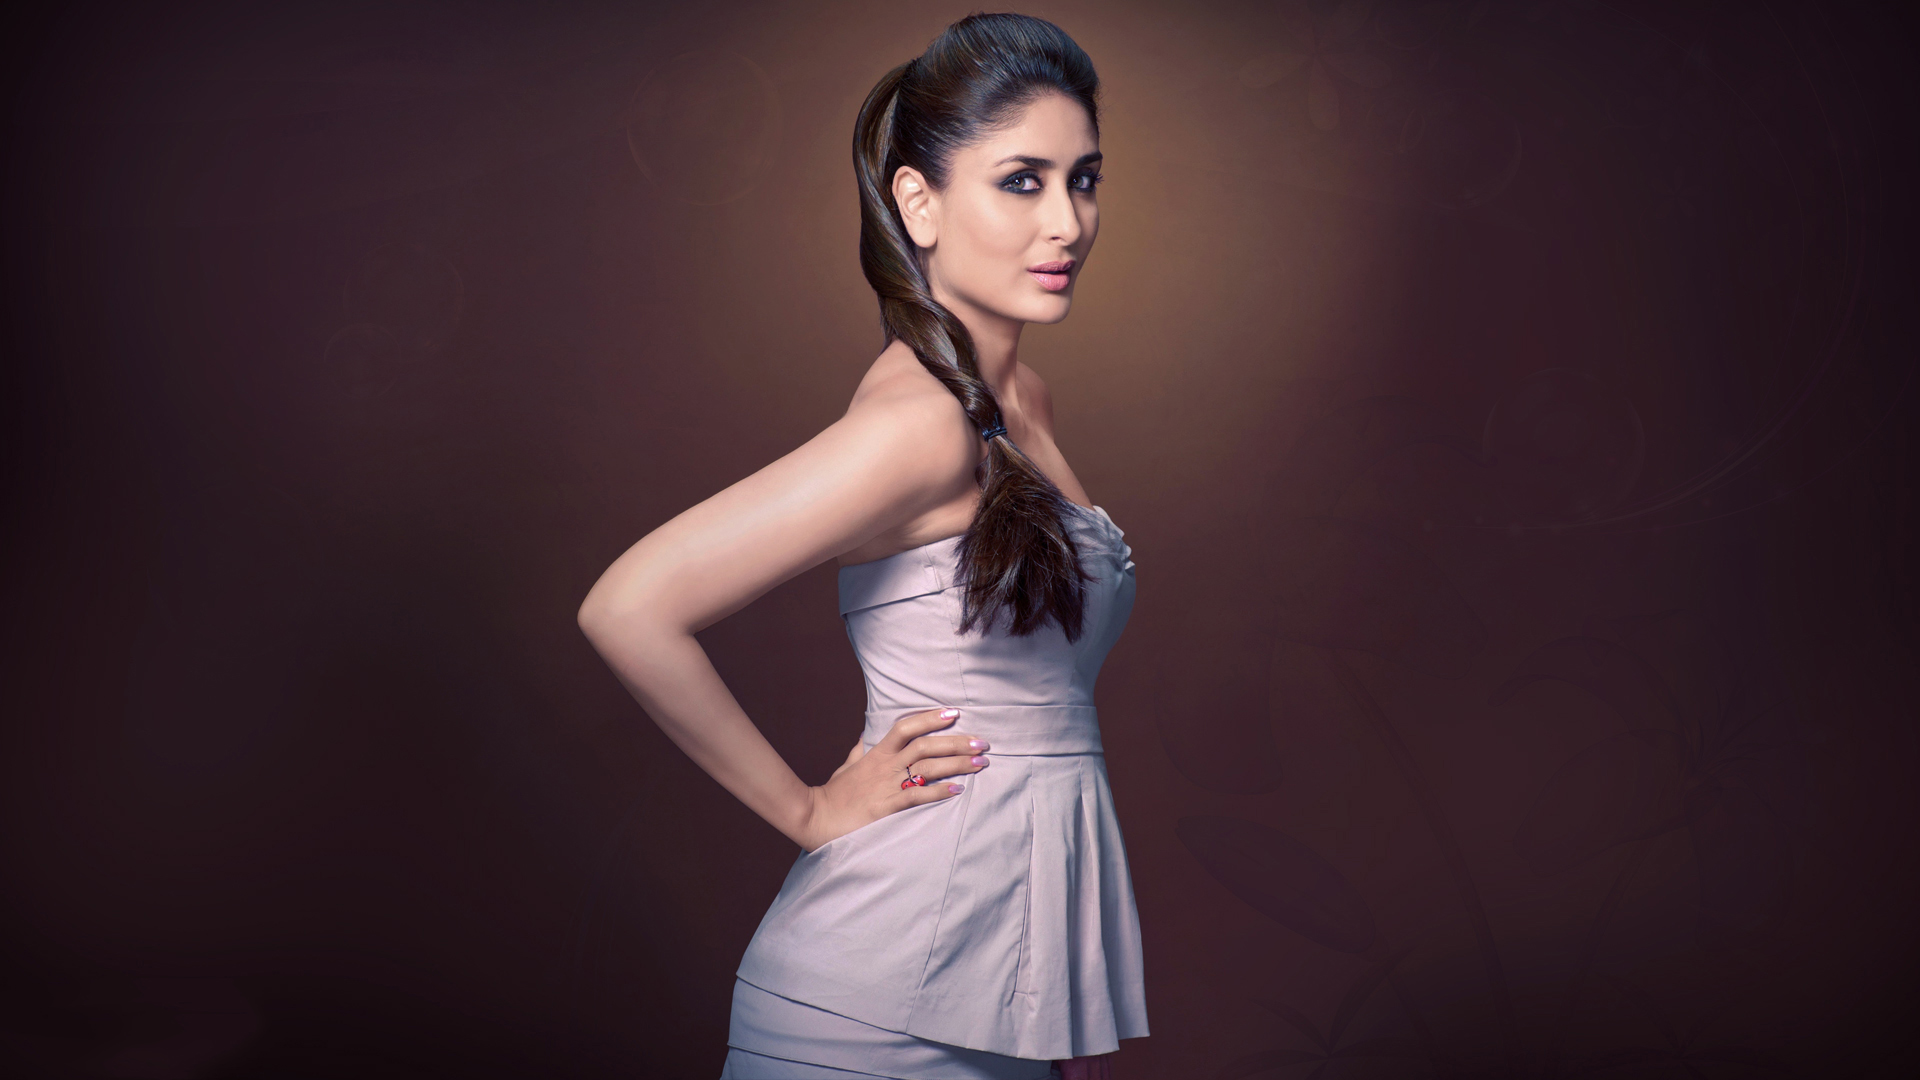 kareena kapoor khan photos HD 2